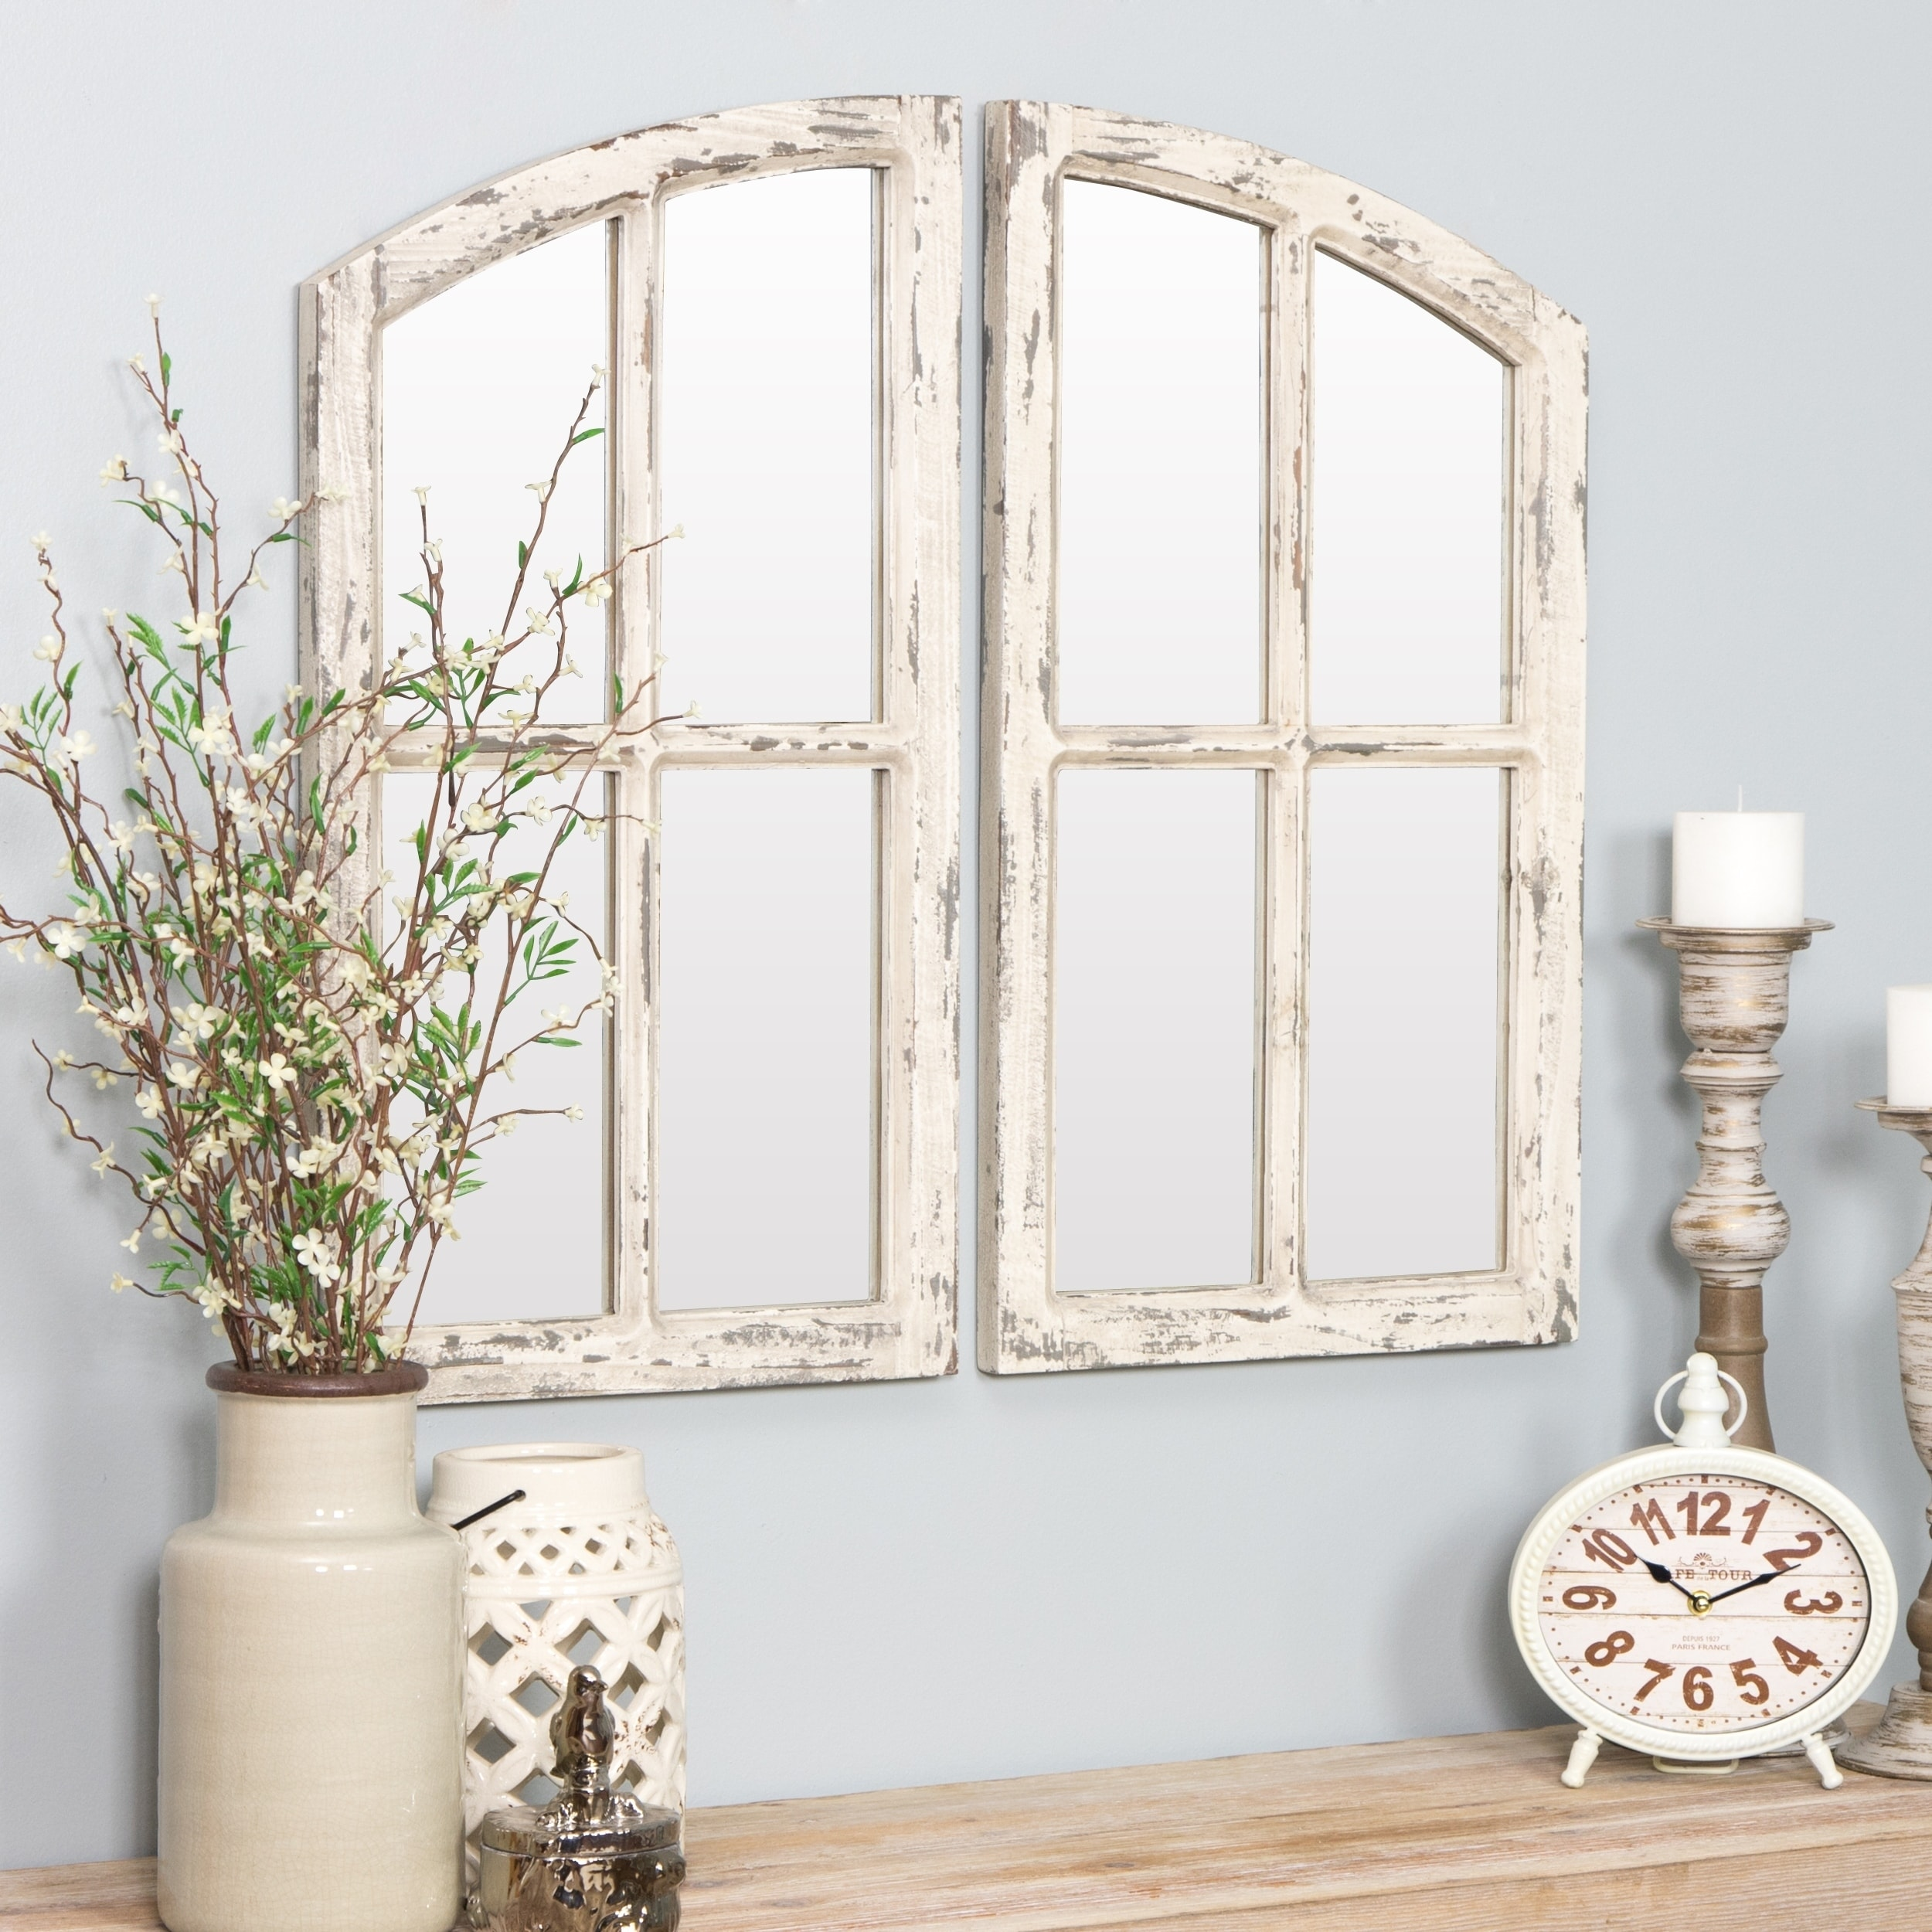 Baby Safe Wall Mirrors 2 Buy Wood Mirrors Online at Overstock | Our Best Decorative Accessories Deals